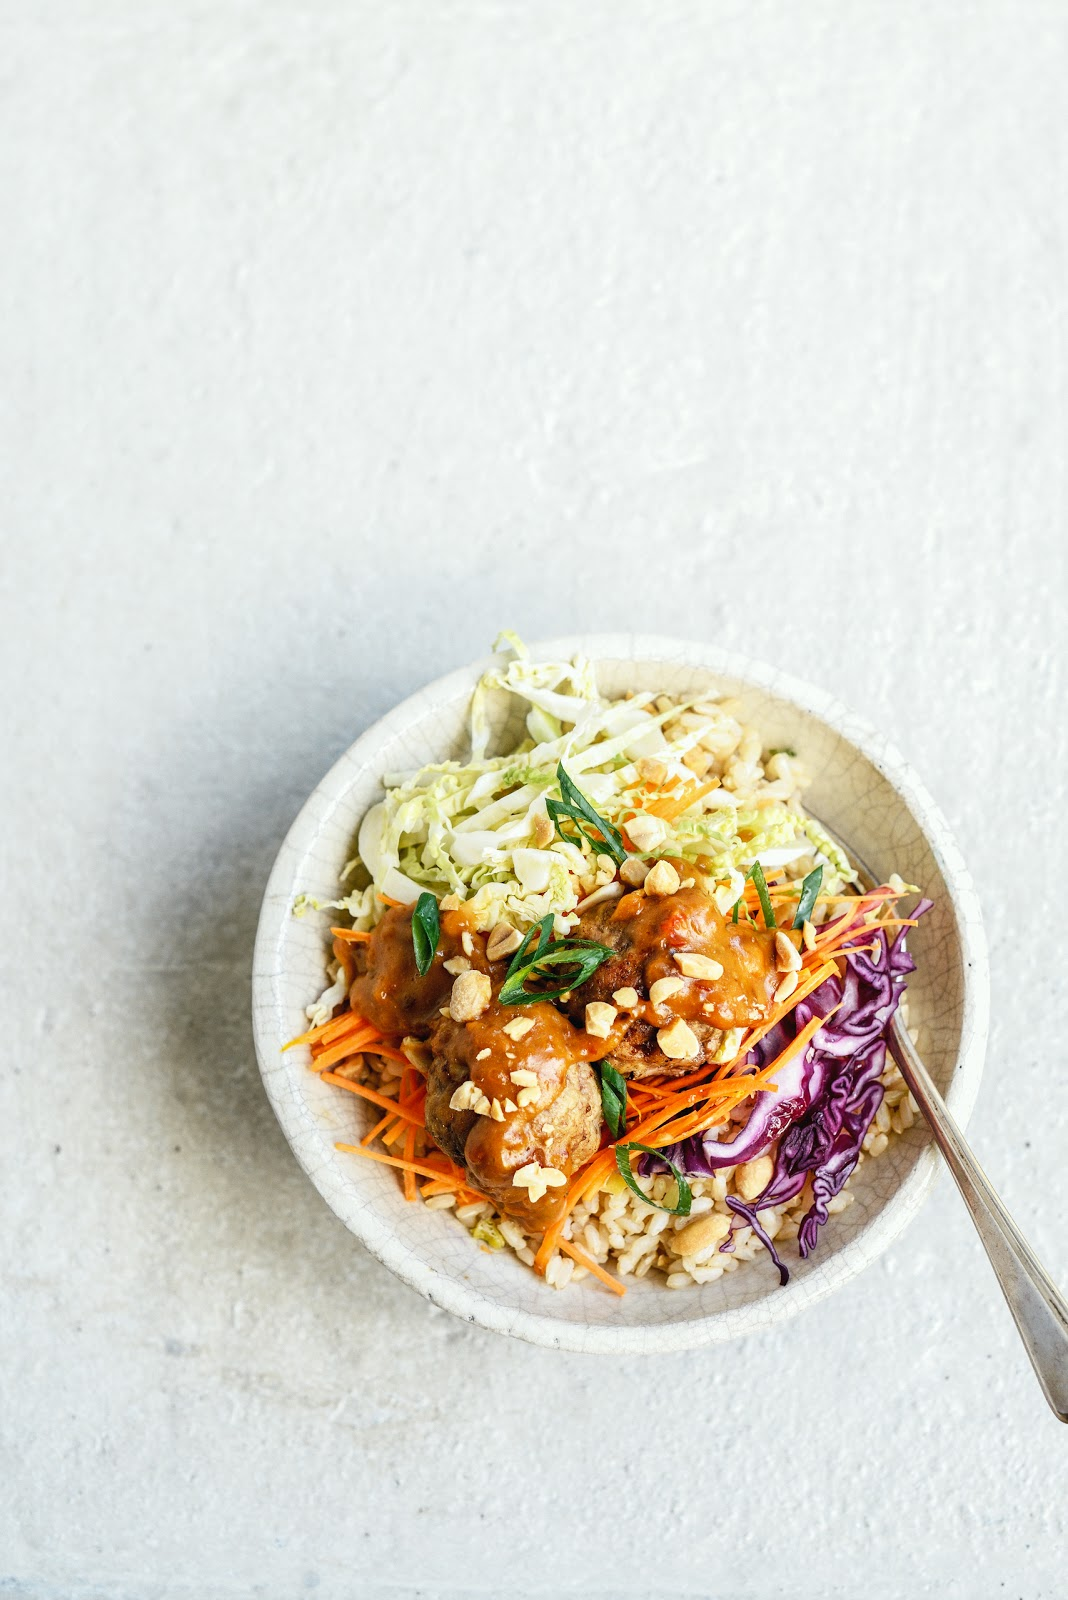 ... The Kitchen: Meatballs on Brown Rice with Peanut Sauce and Asian Slaw